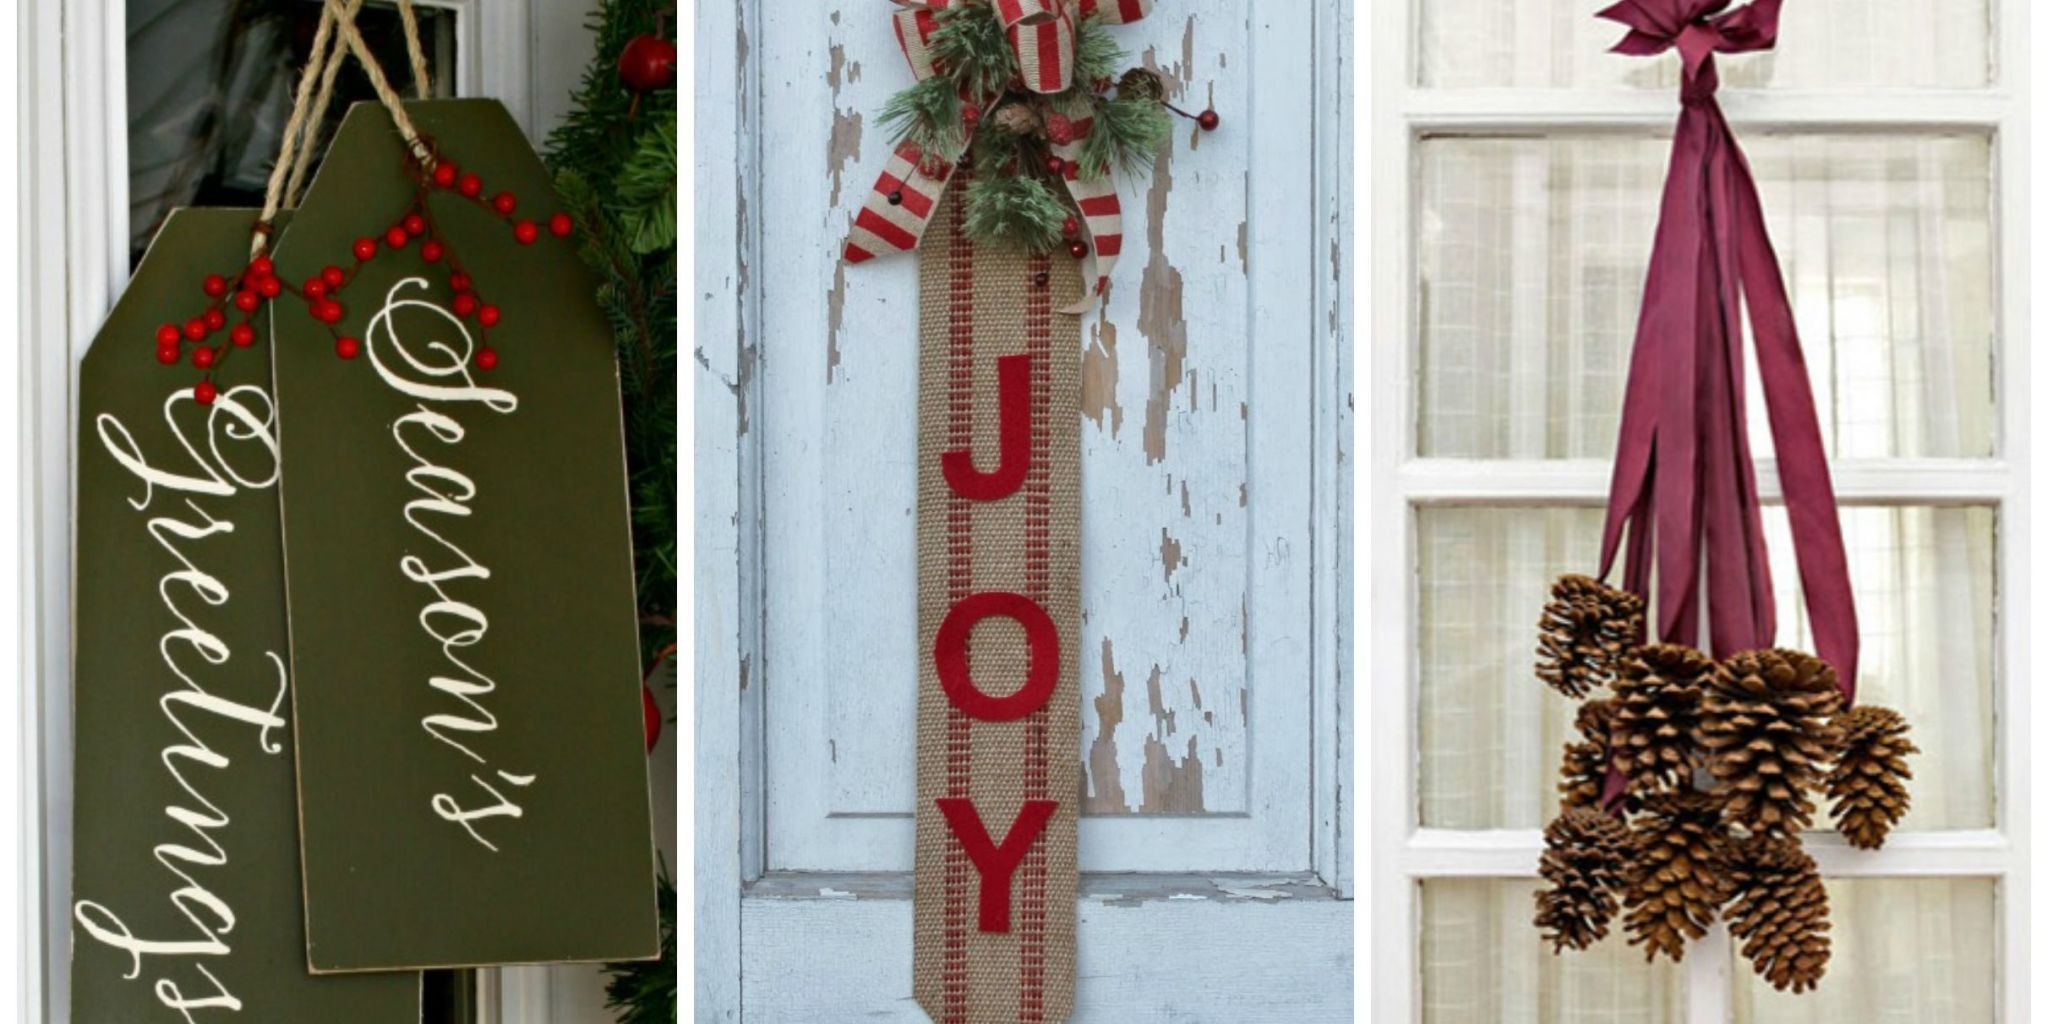 These out-of-the-box DIY door decorations will brighten up your front porch and help spread the Christmas cheer this holiday season. & 14 DIY Christmas Door Decorations - Holiday Door Decorating Ideas ...